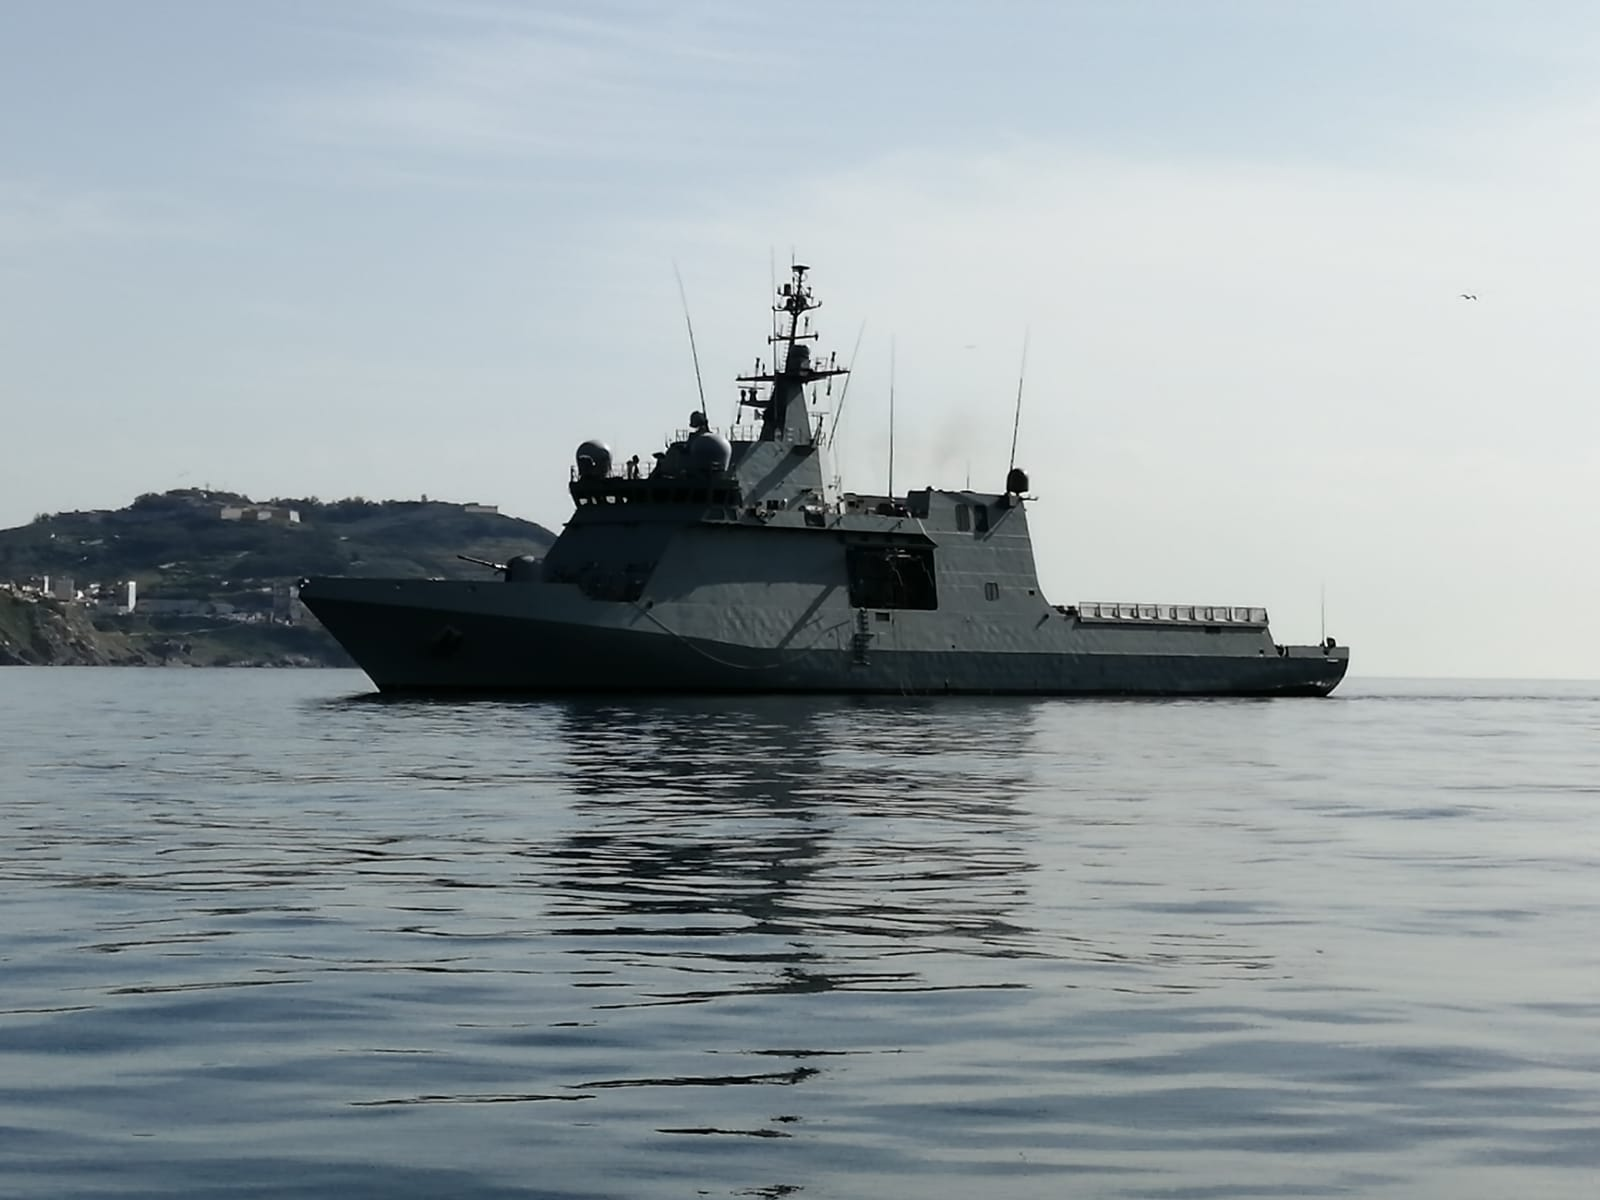 The ship 'Furor' joins the missions of surveillance and maritime security